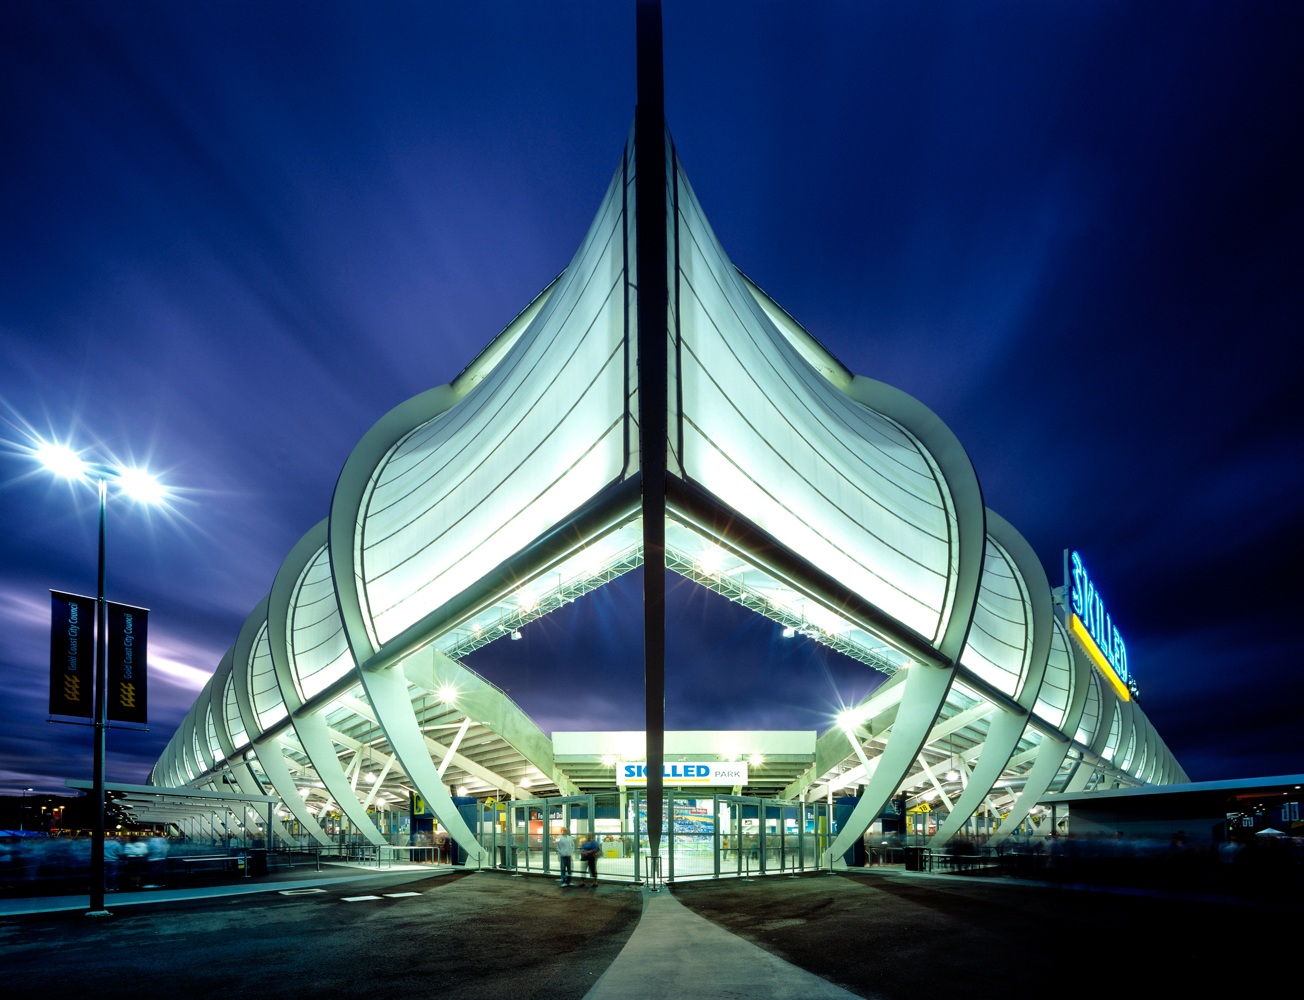 Night view main admission gates showing roof structureSP_078.jpg